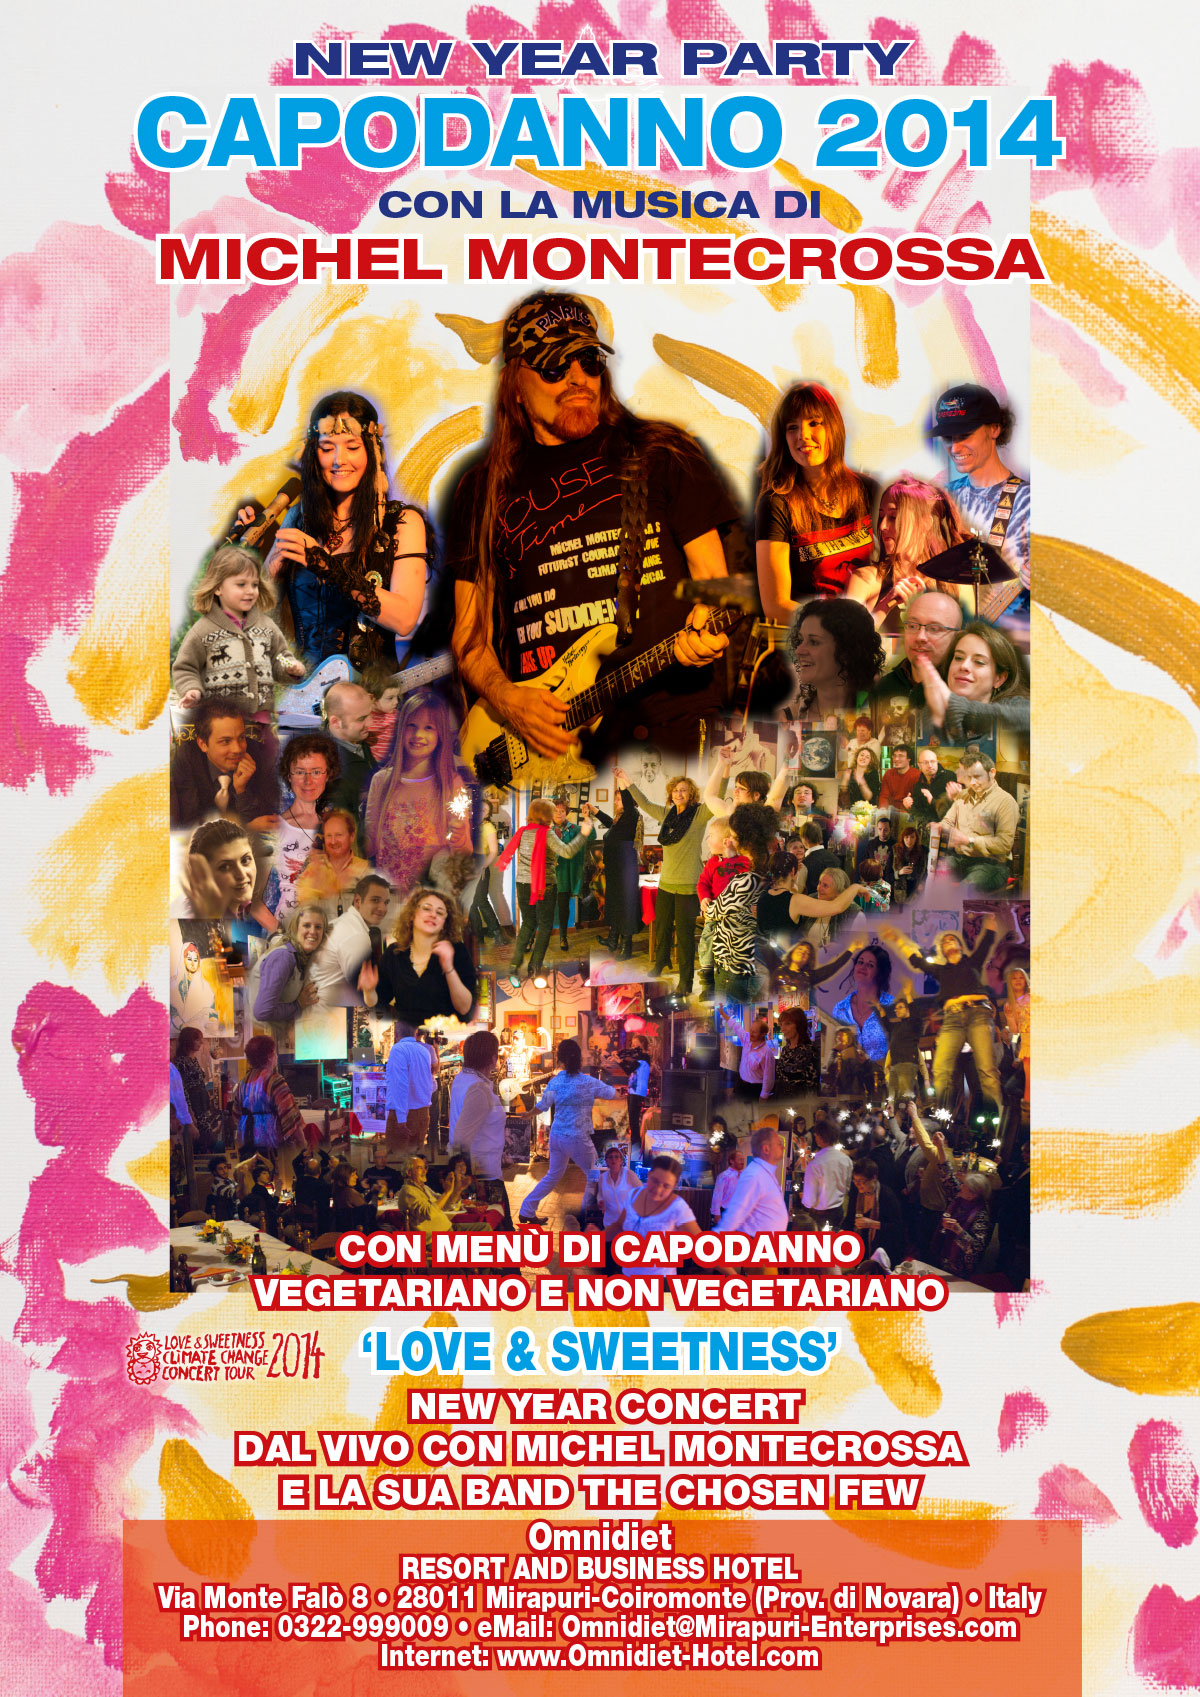 Love & Sweetness New Year Concert